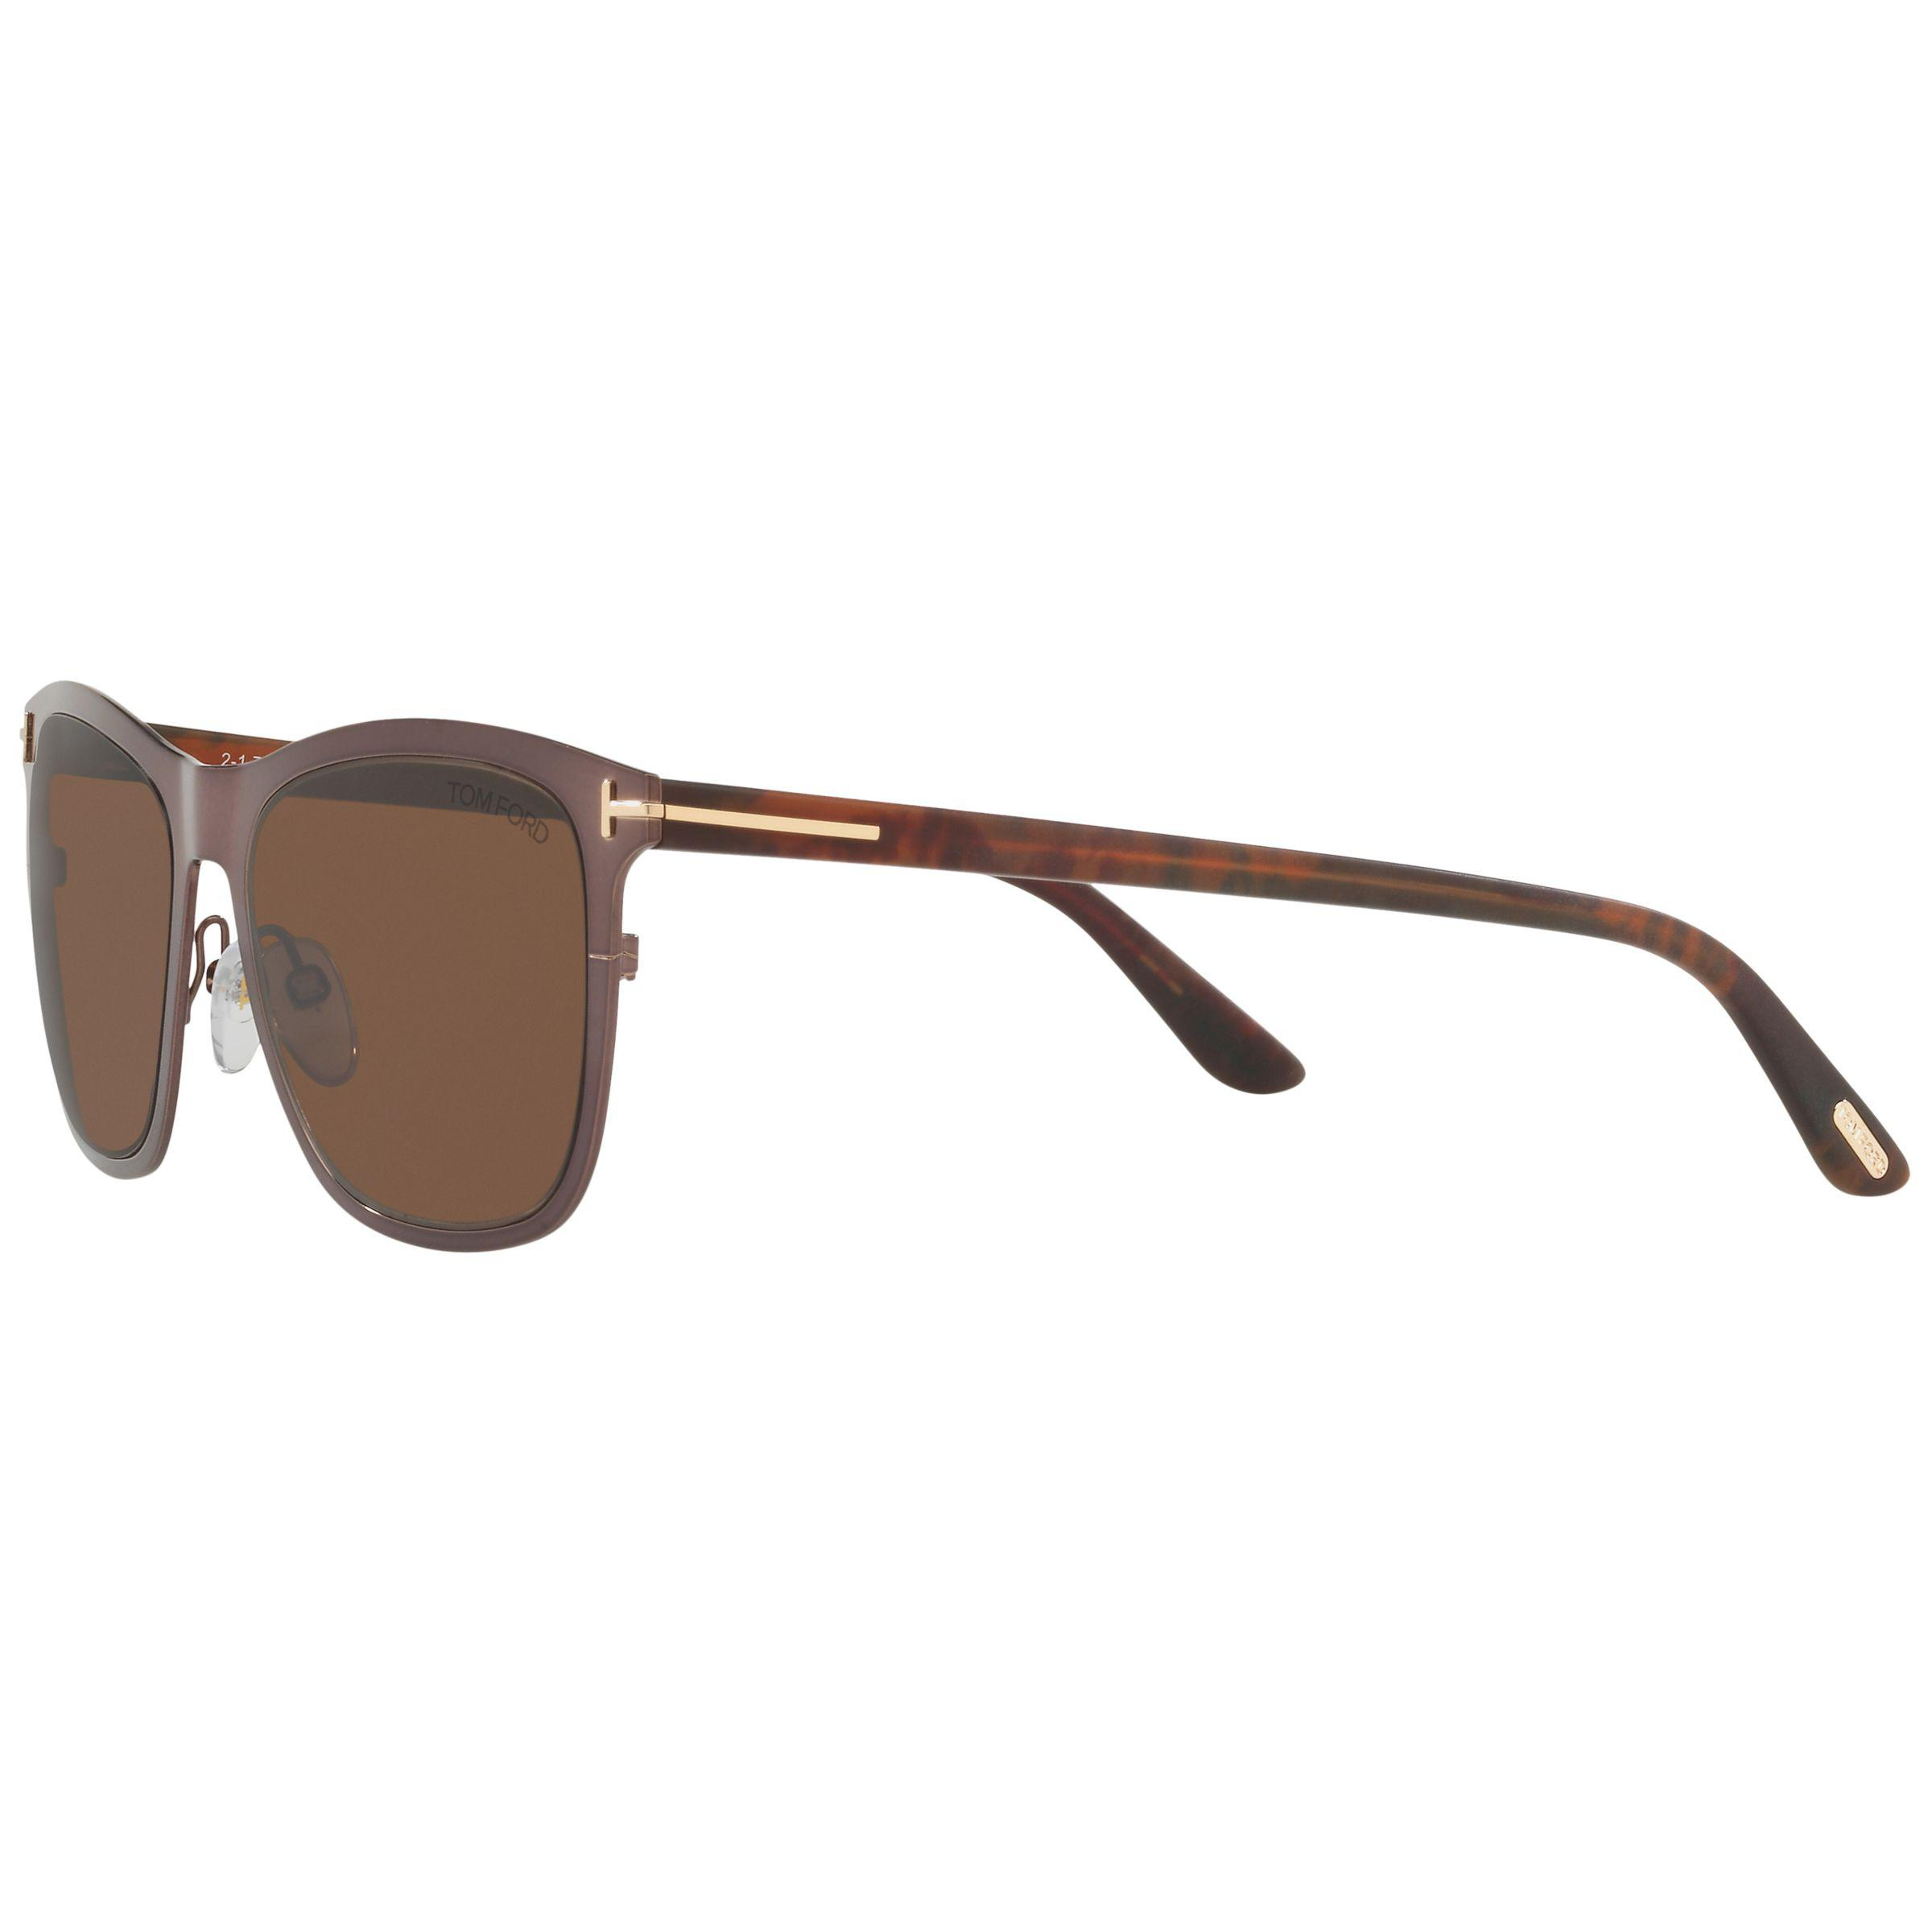 11db36bbfbd66 Tom Ford Ft0526 Alasdhair Square Sunglasses in Brown for Men - Lyst